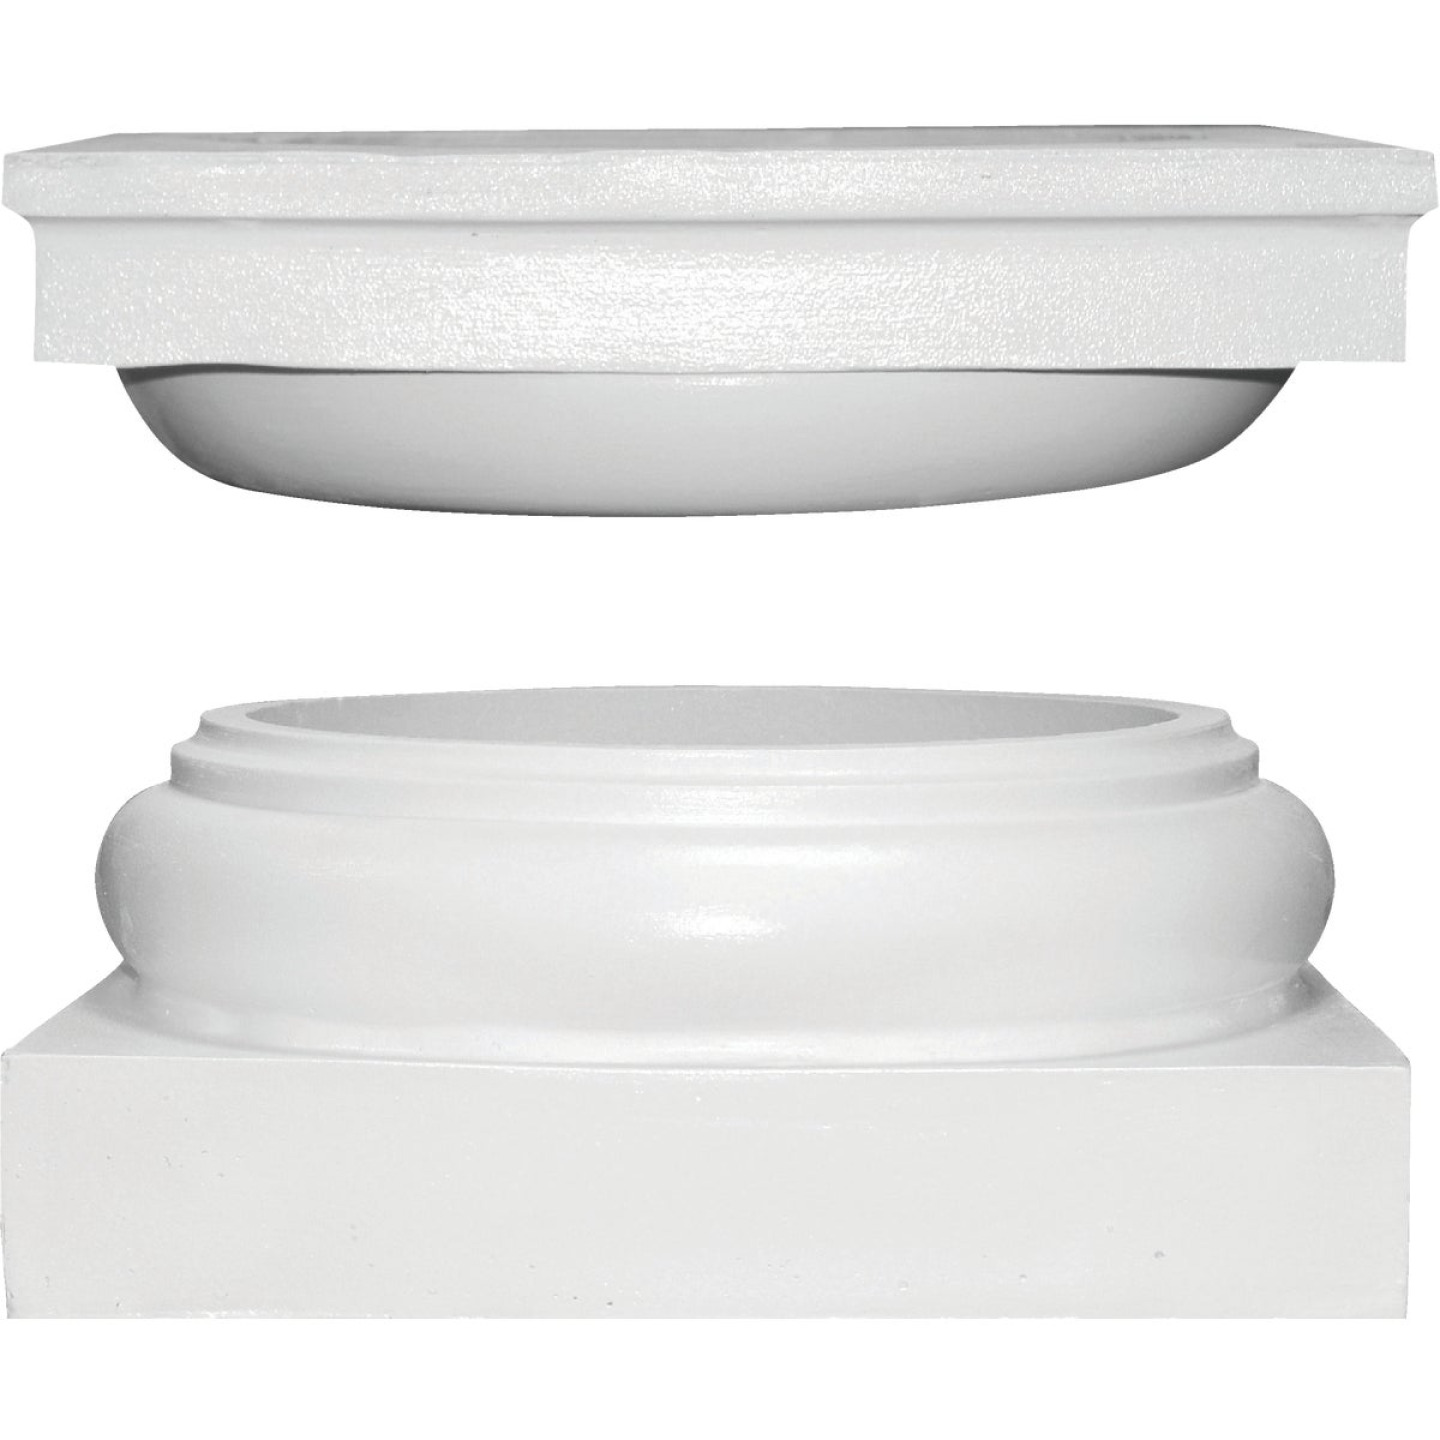 Crown Column Cap 9-1/2 In., Base 10-3/8 In. Unfinished Plastic Round Cap/Base Set Image 1